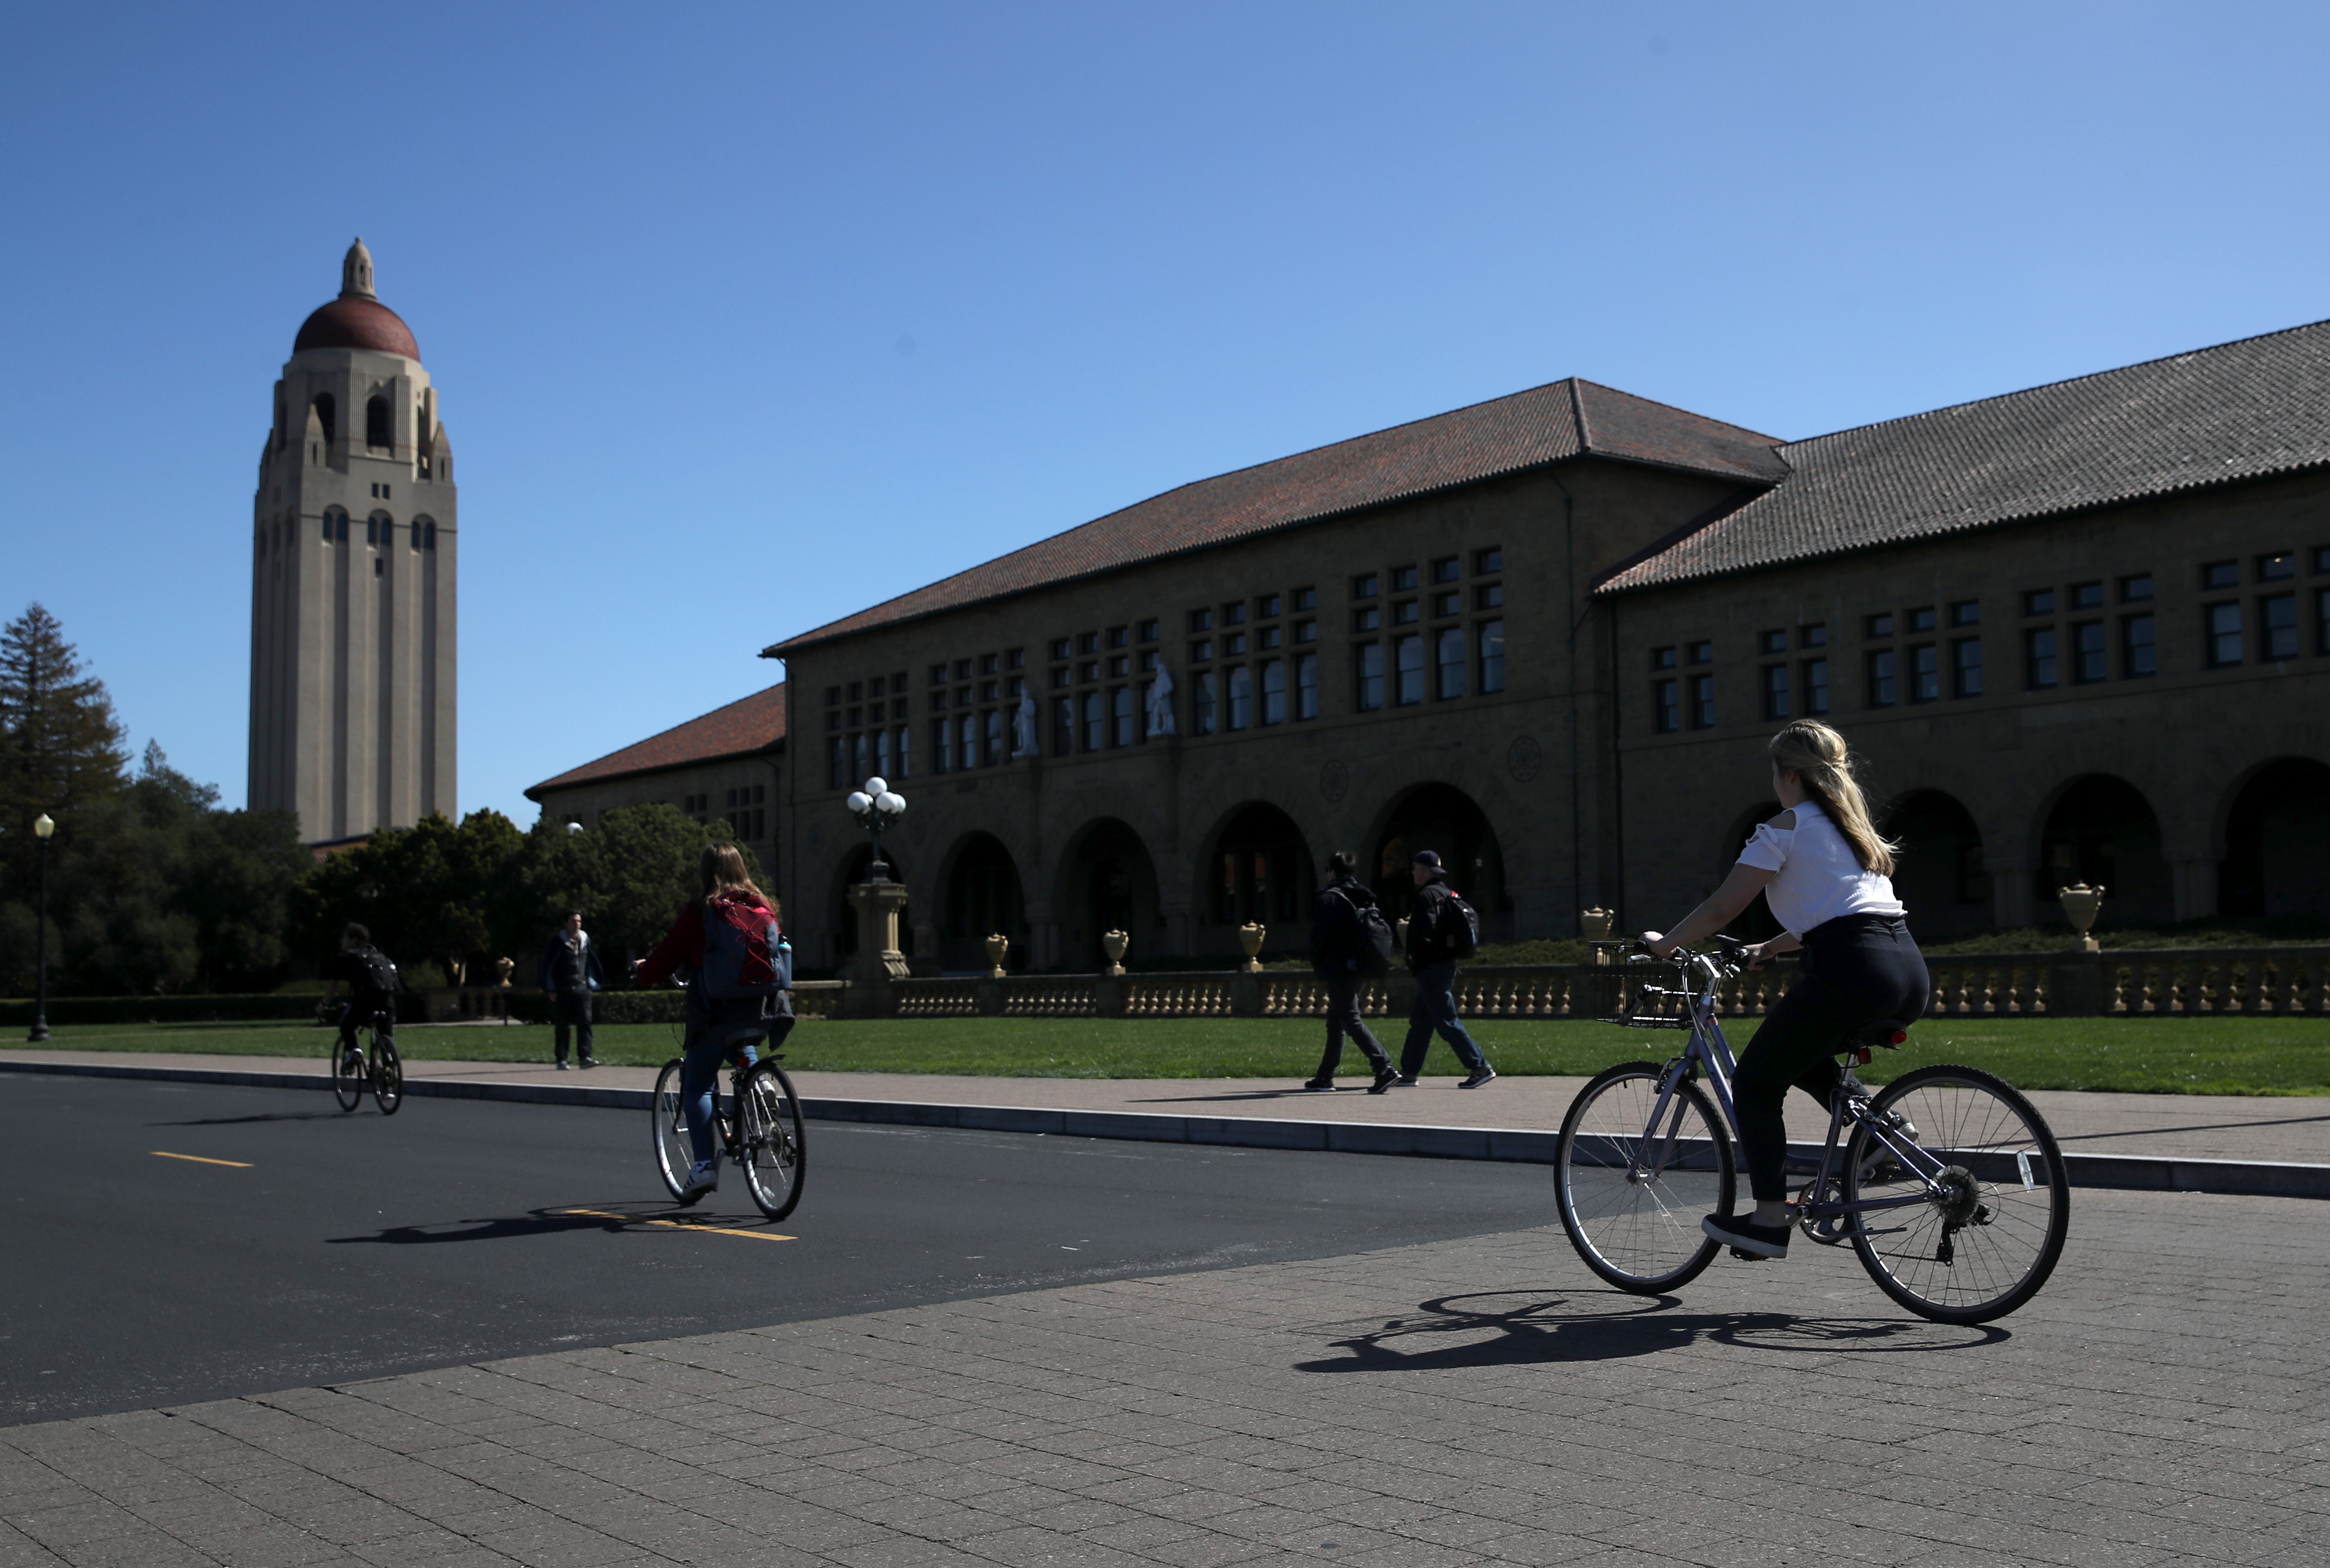 Universidad de Stanford | Agence France-Presse